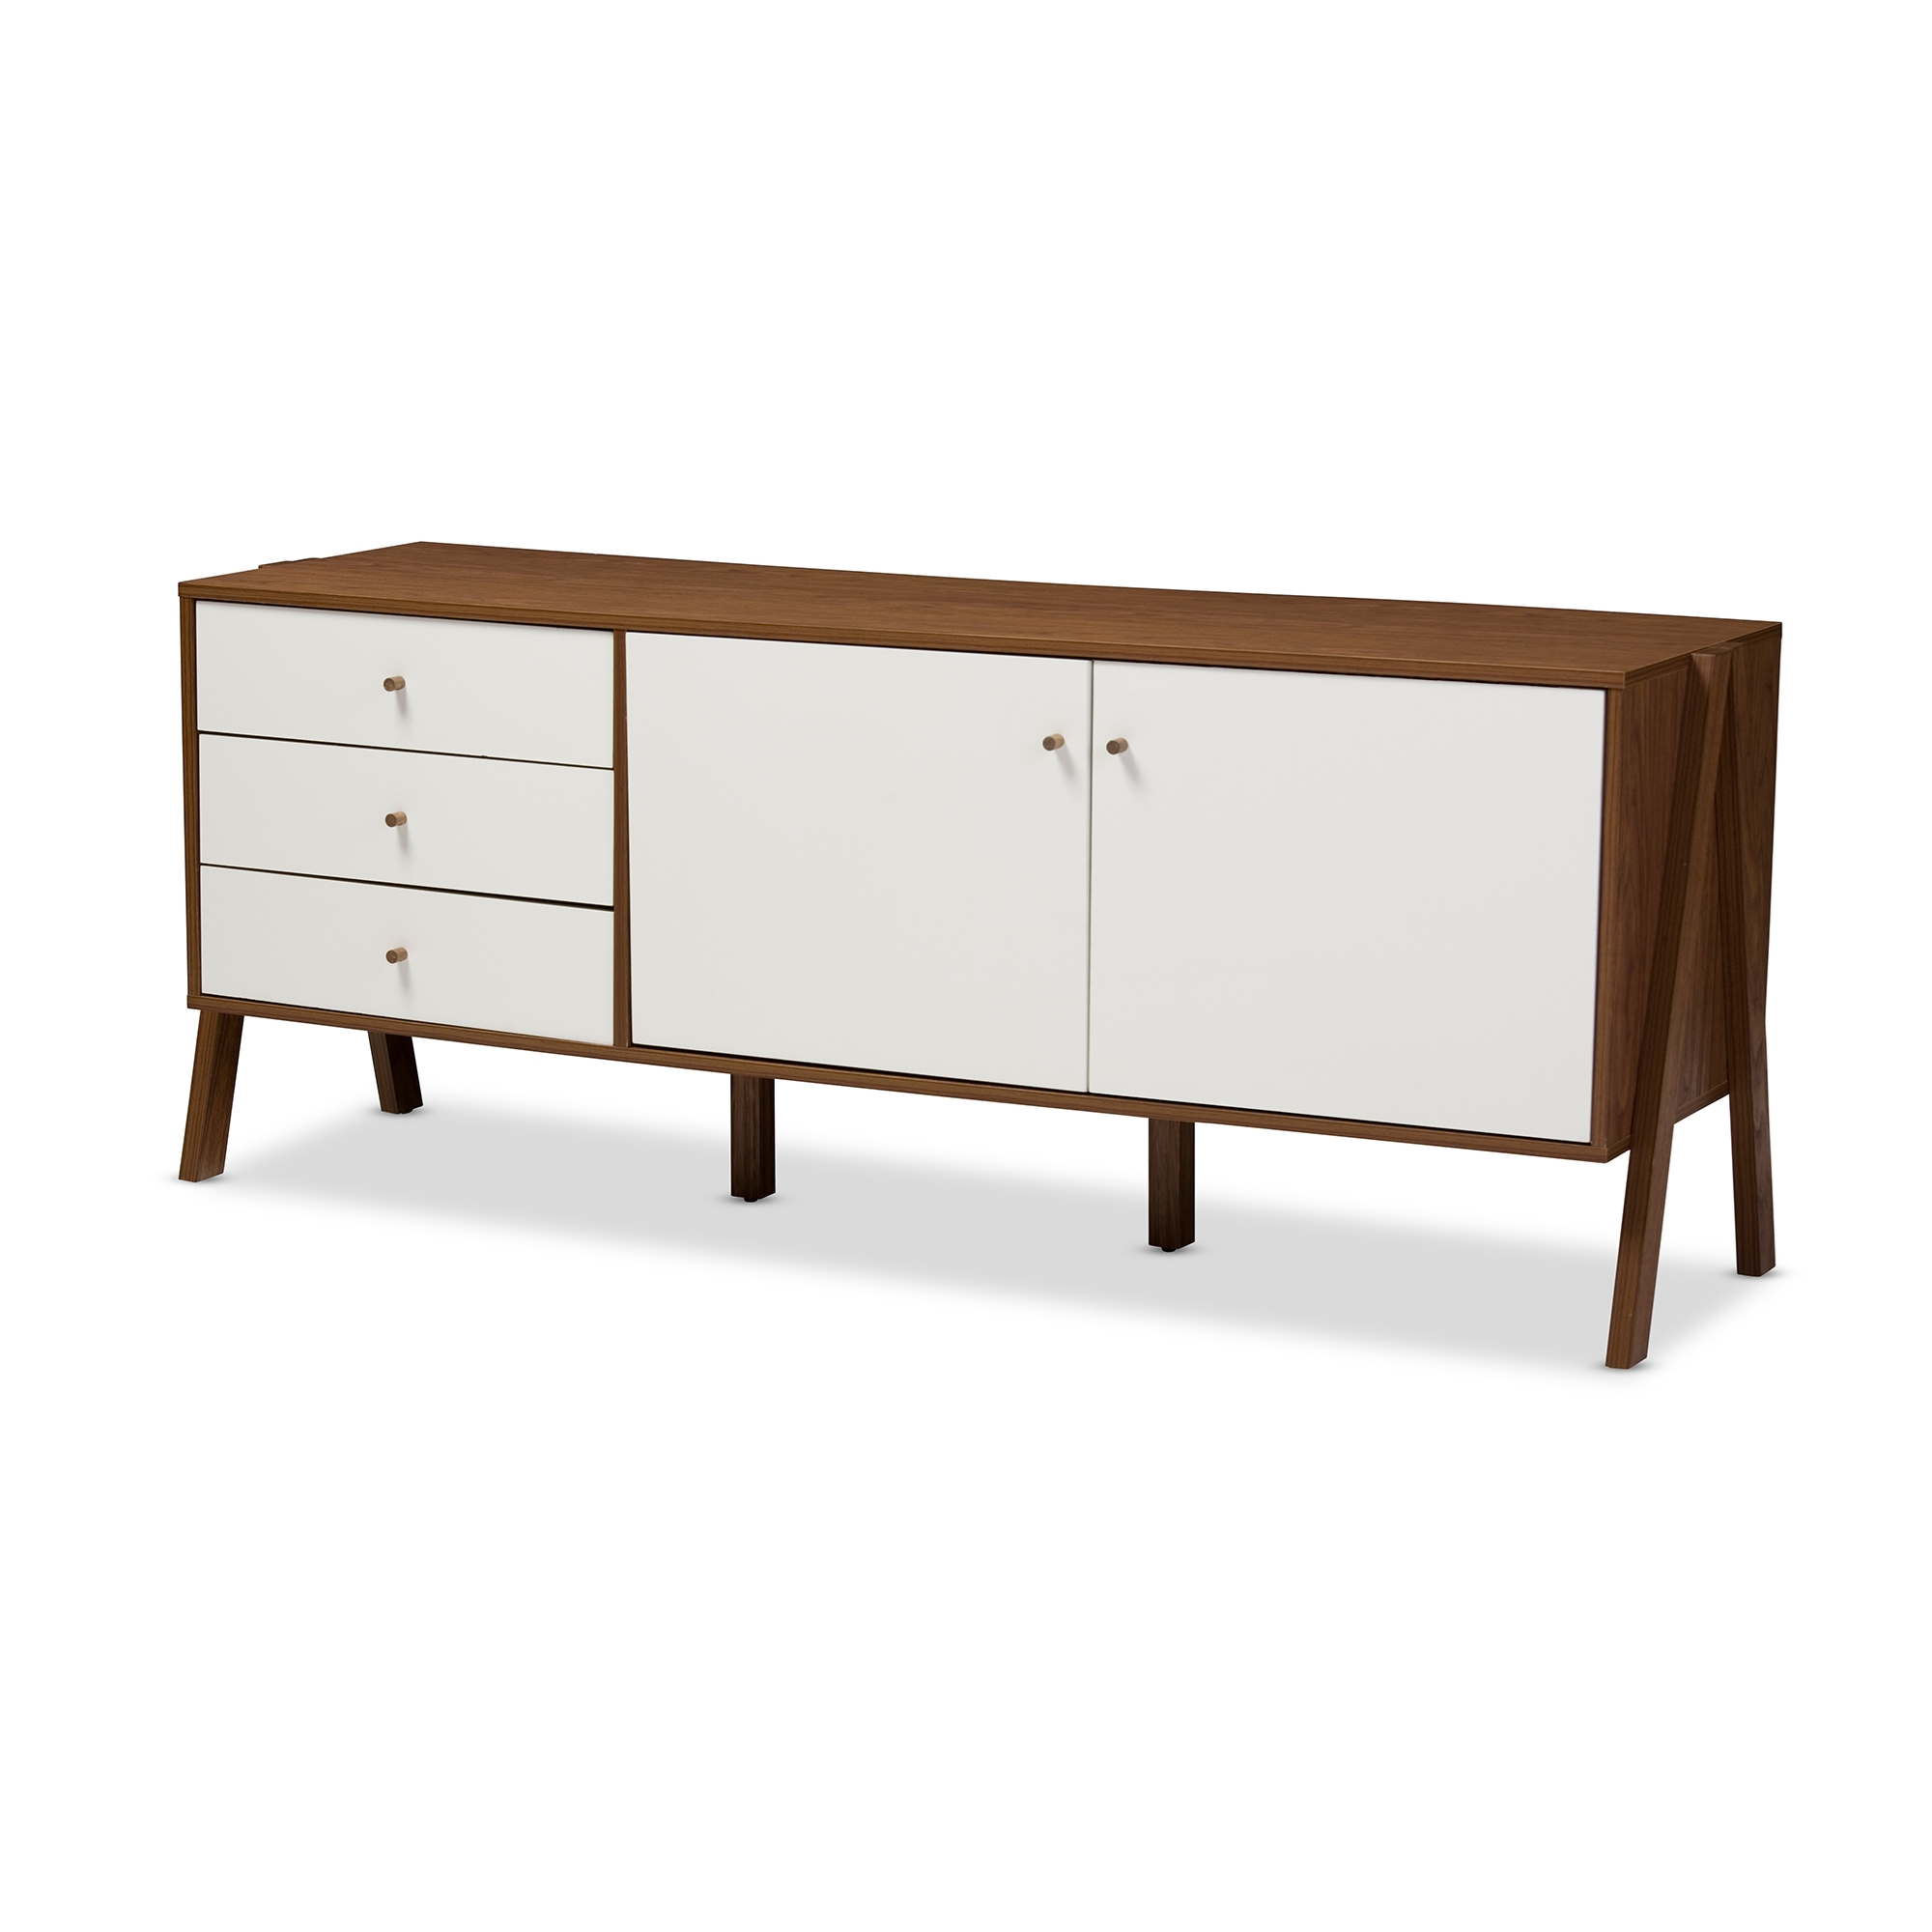 ... Baxton Studio Harlow Mid-century Modern Scandinavian Style White and Walnut Wood Sideboard Storage Cabinet ...  sc 1 st  Wholesale Interiors & Wholesale Buffets and Sideboards | Wholesale Dining Room Furniture ...